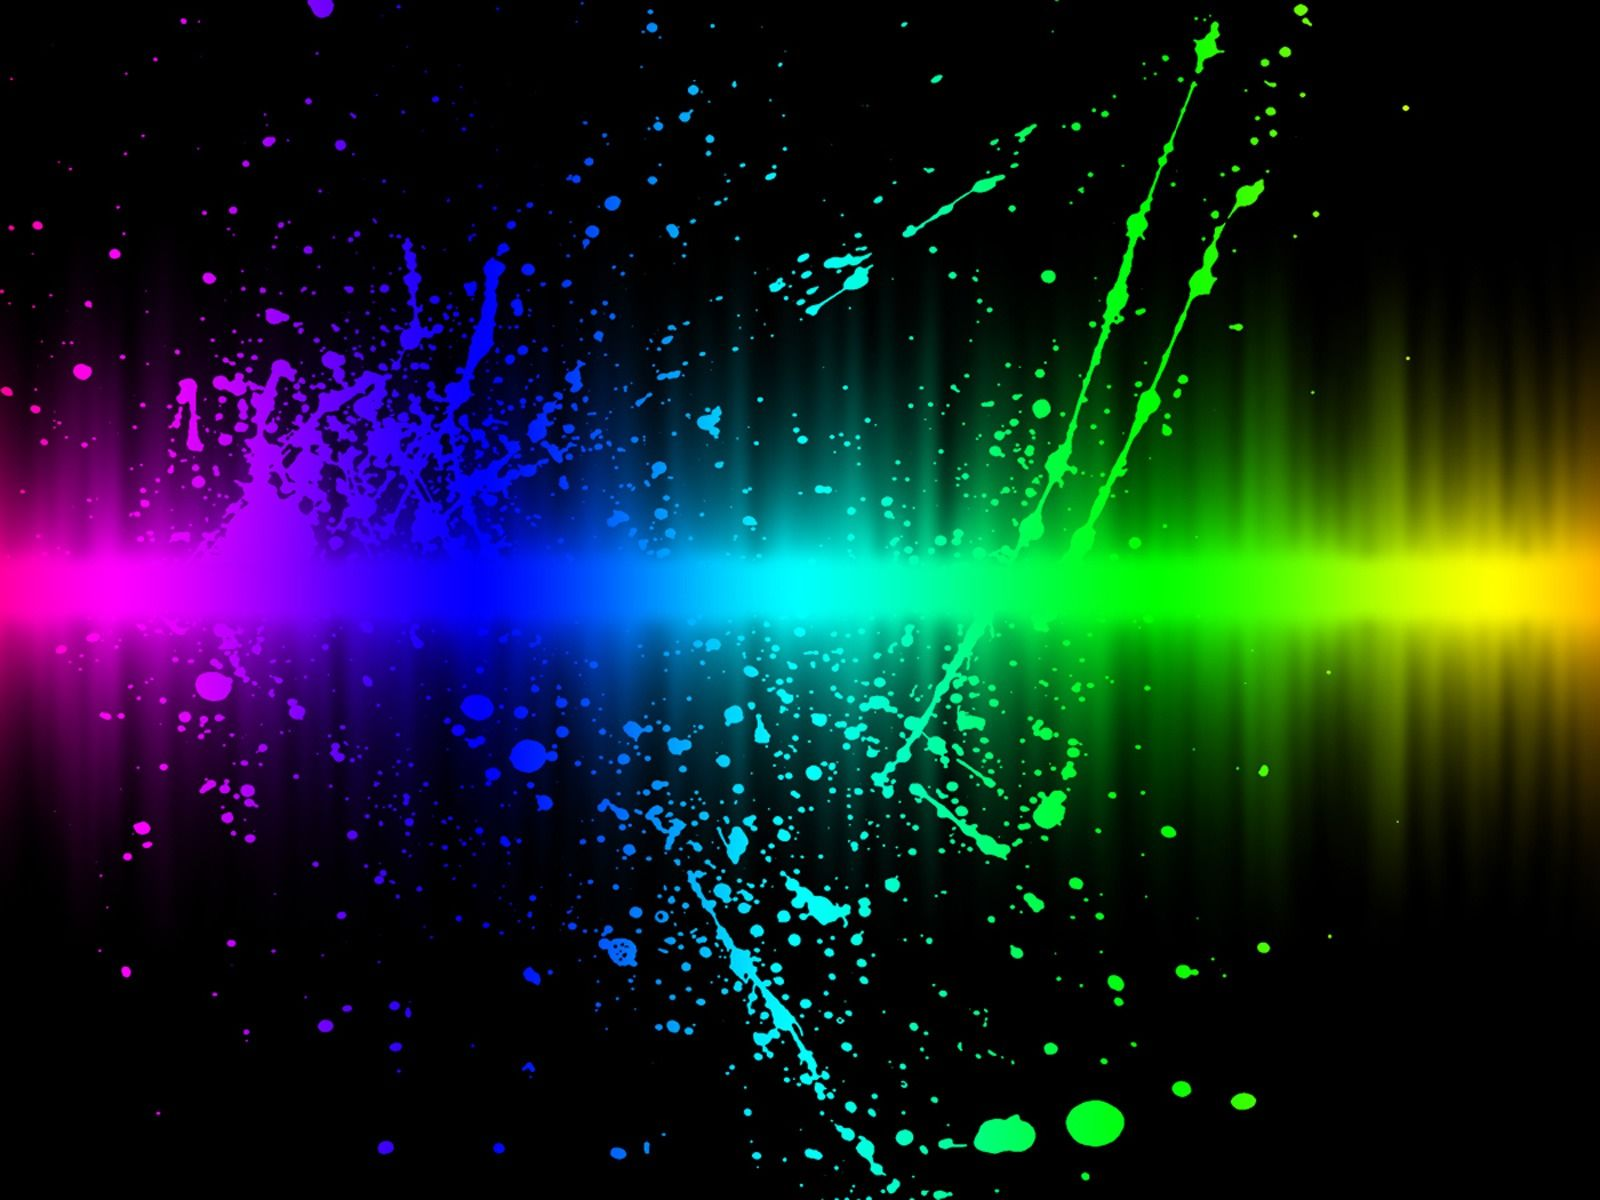 Cool Colors Explosion Wallpaper Abstract High Definition 3d Wallpapers For Desktop 1600 1200 45